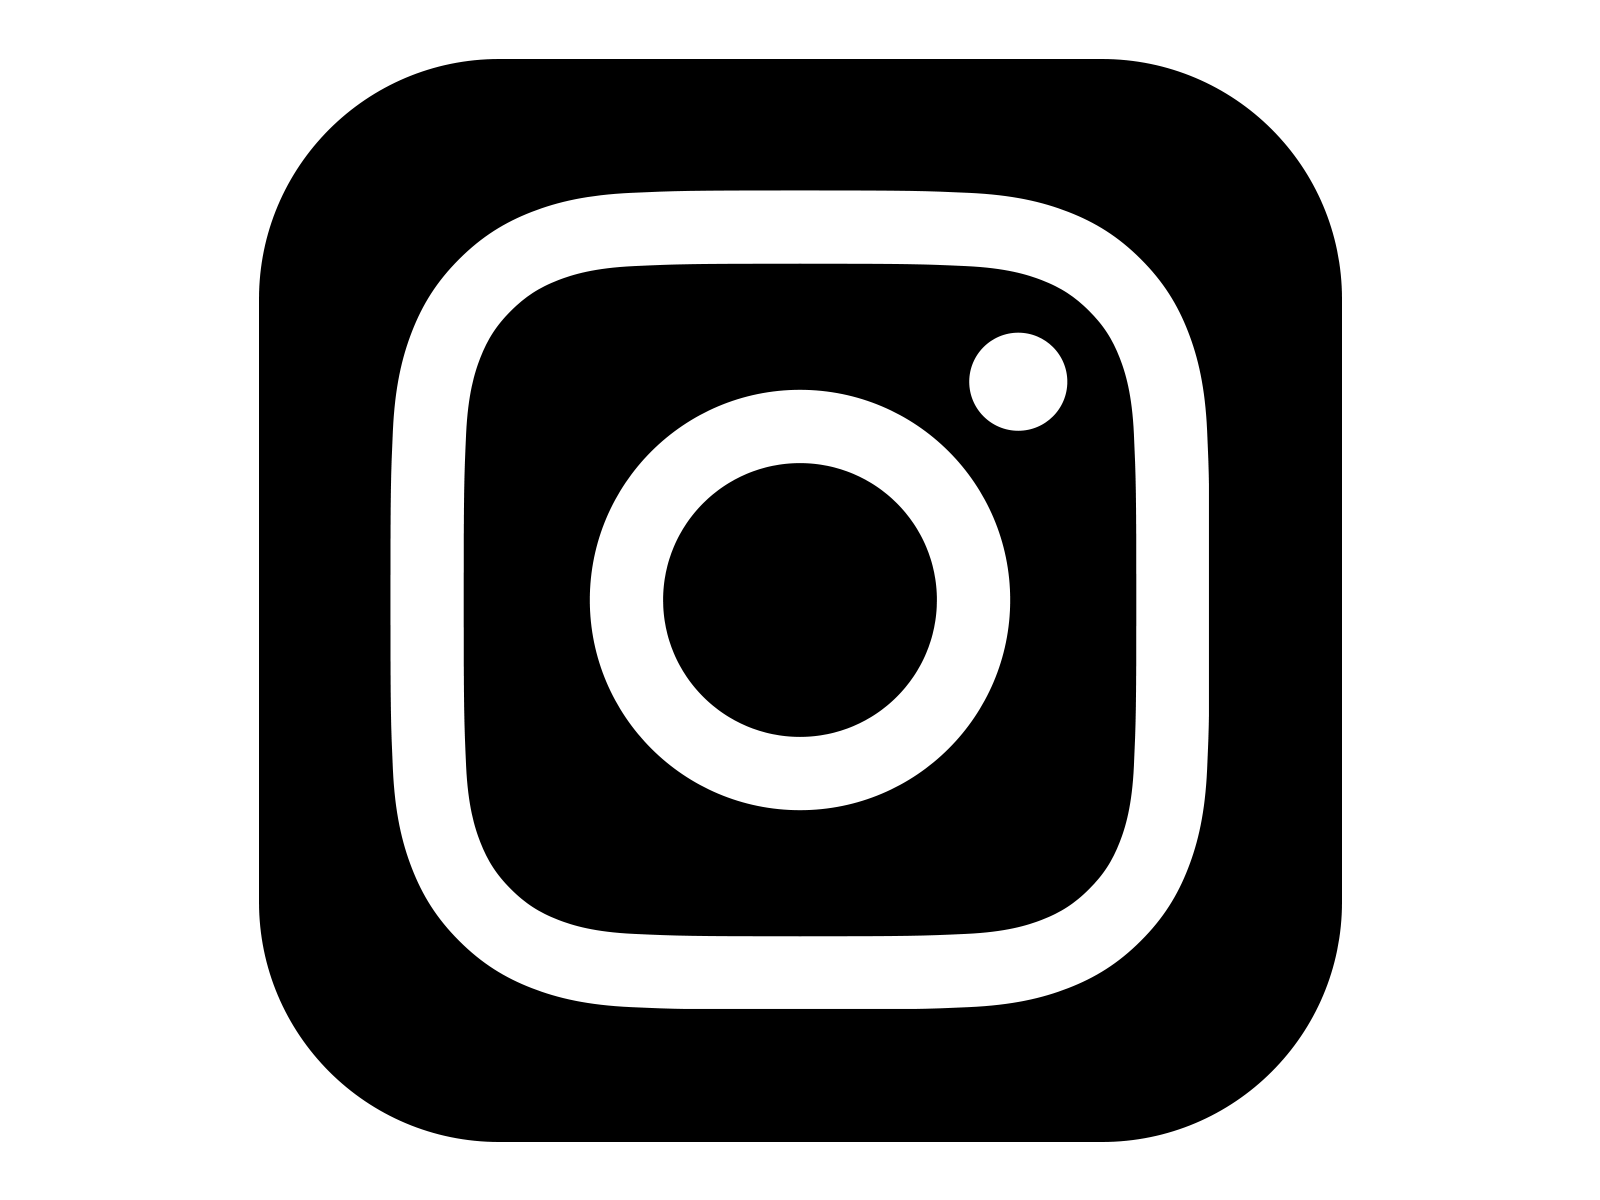 Instagram Icon White on Black in 2019.